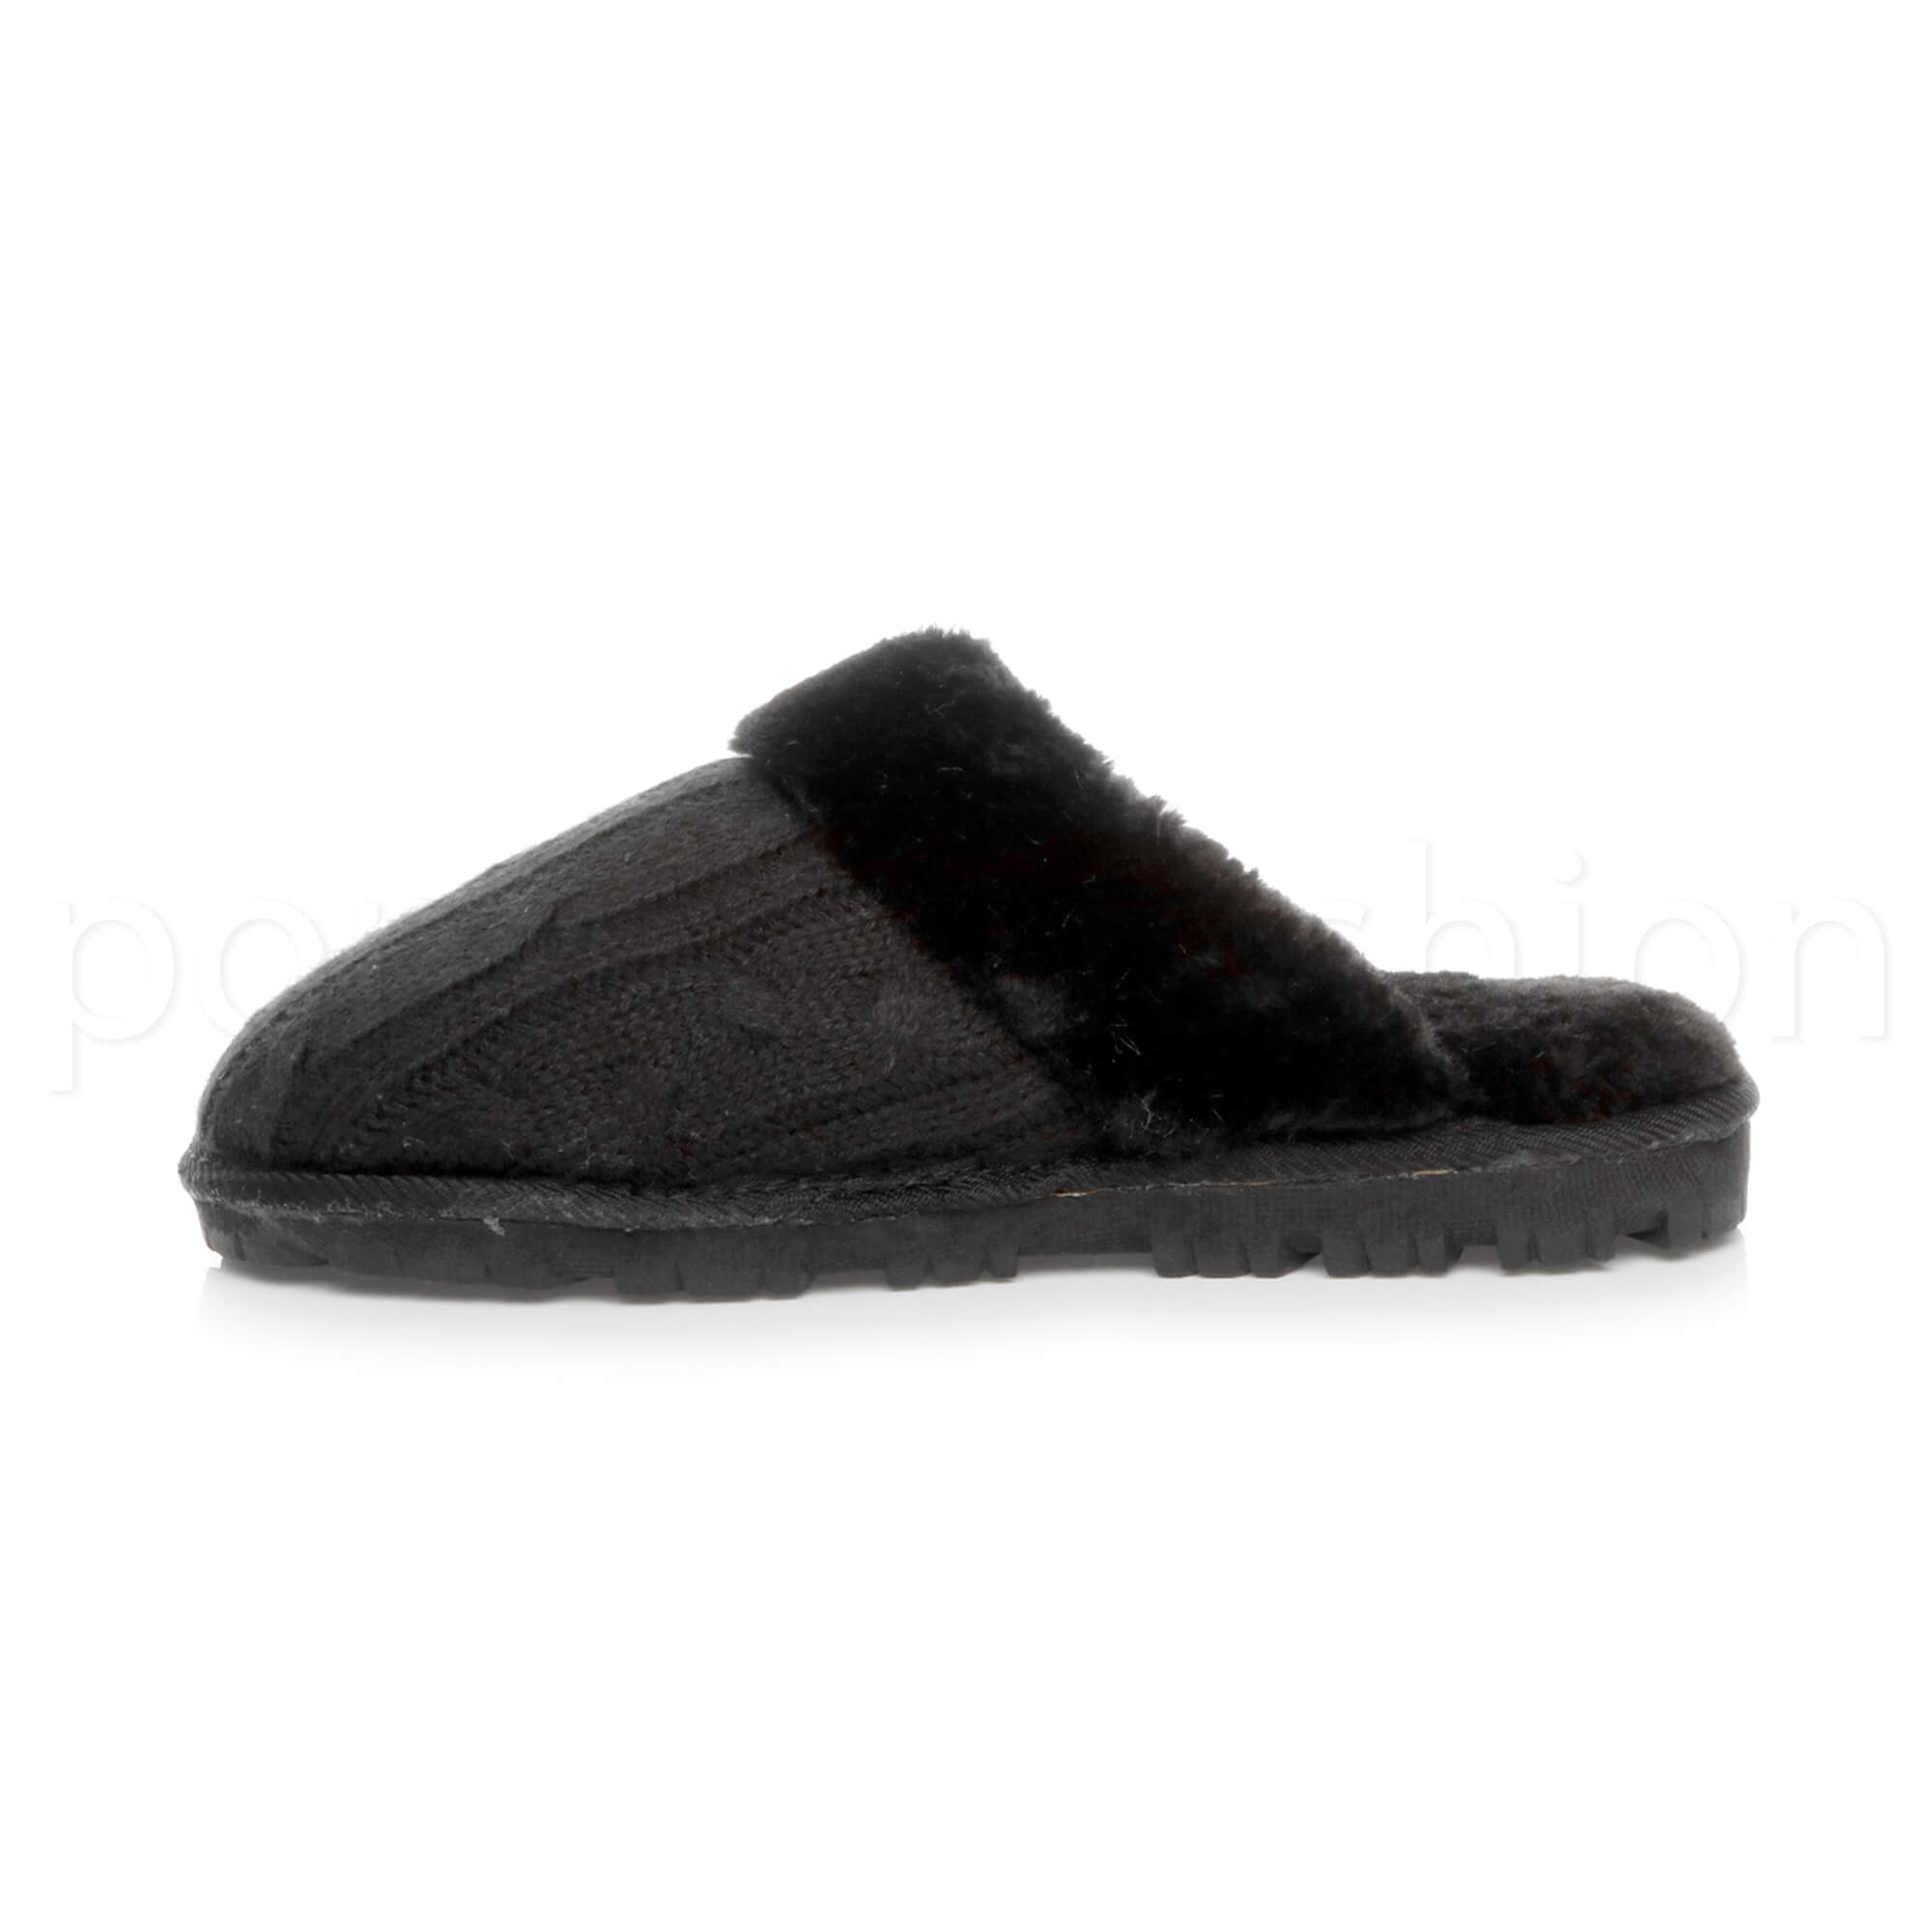 WOMENS-LADIES-FLAT-FUR-LINED-COMFORTABLE-WINTER-MULES-SLIPPERS-HOUSE-SHOES-SIZE thumbnail 32